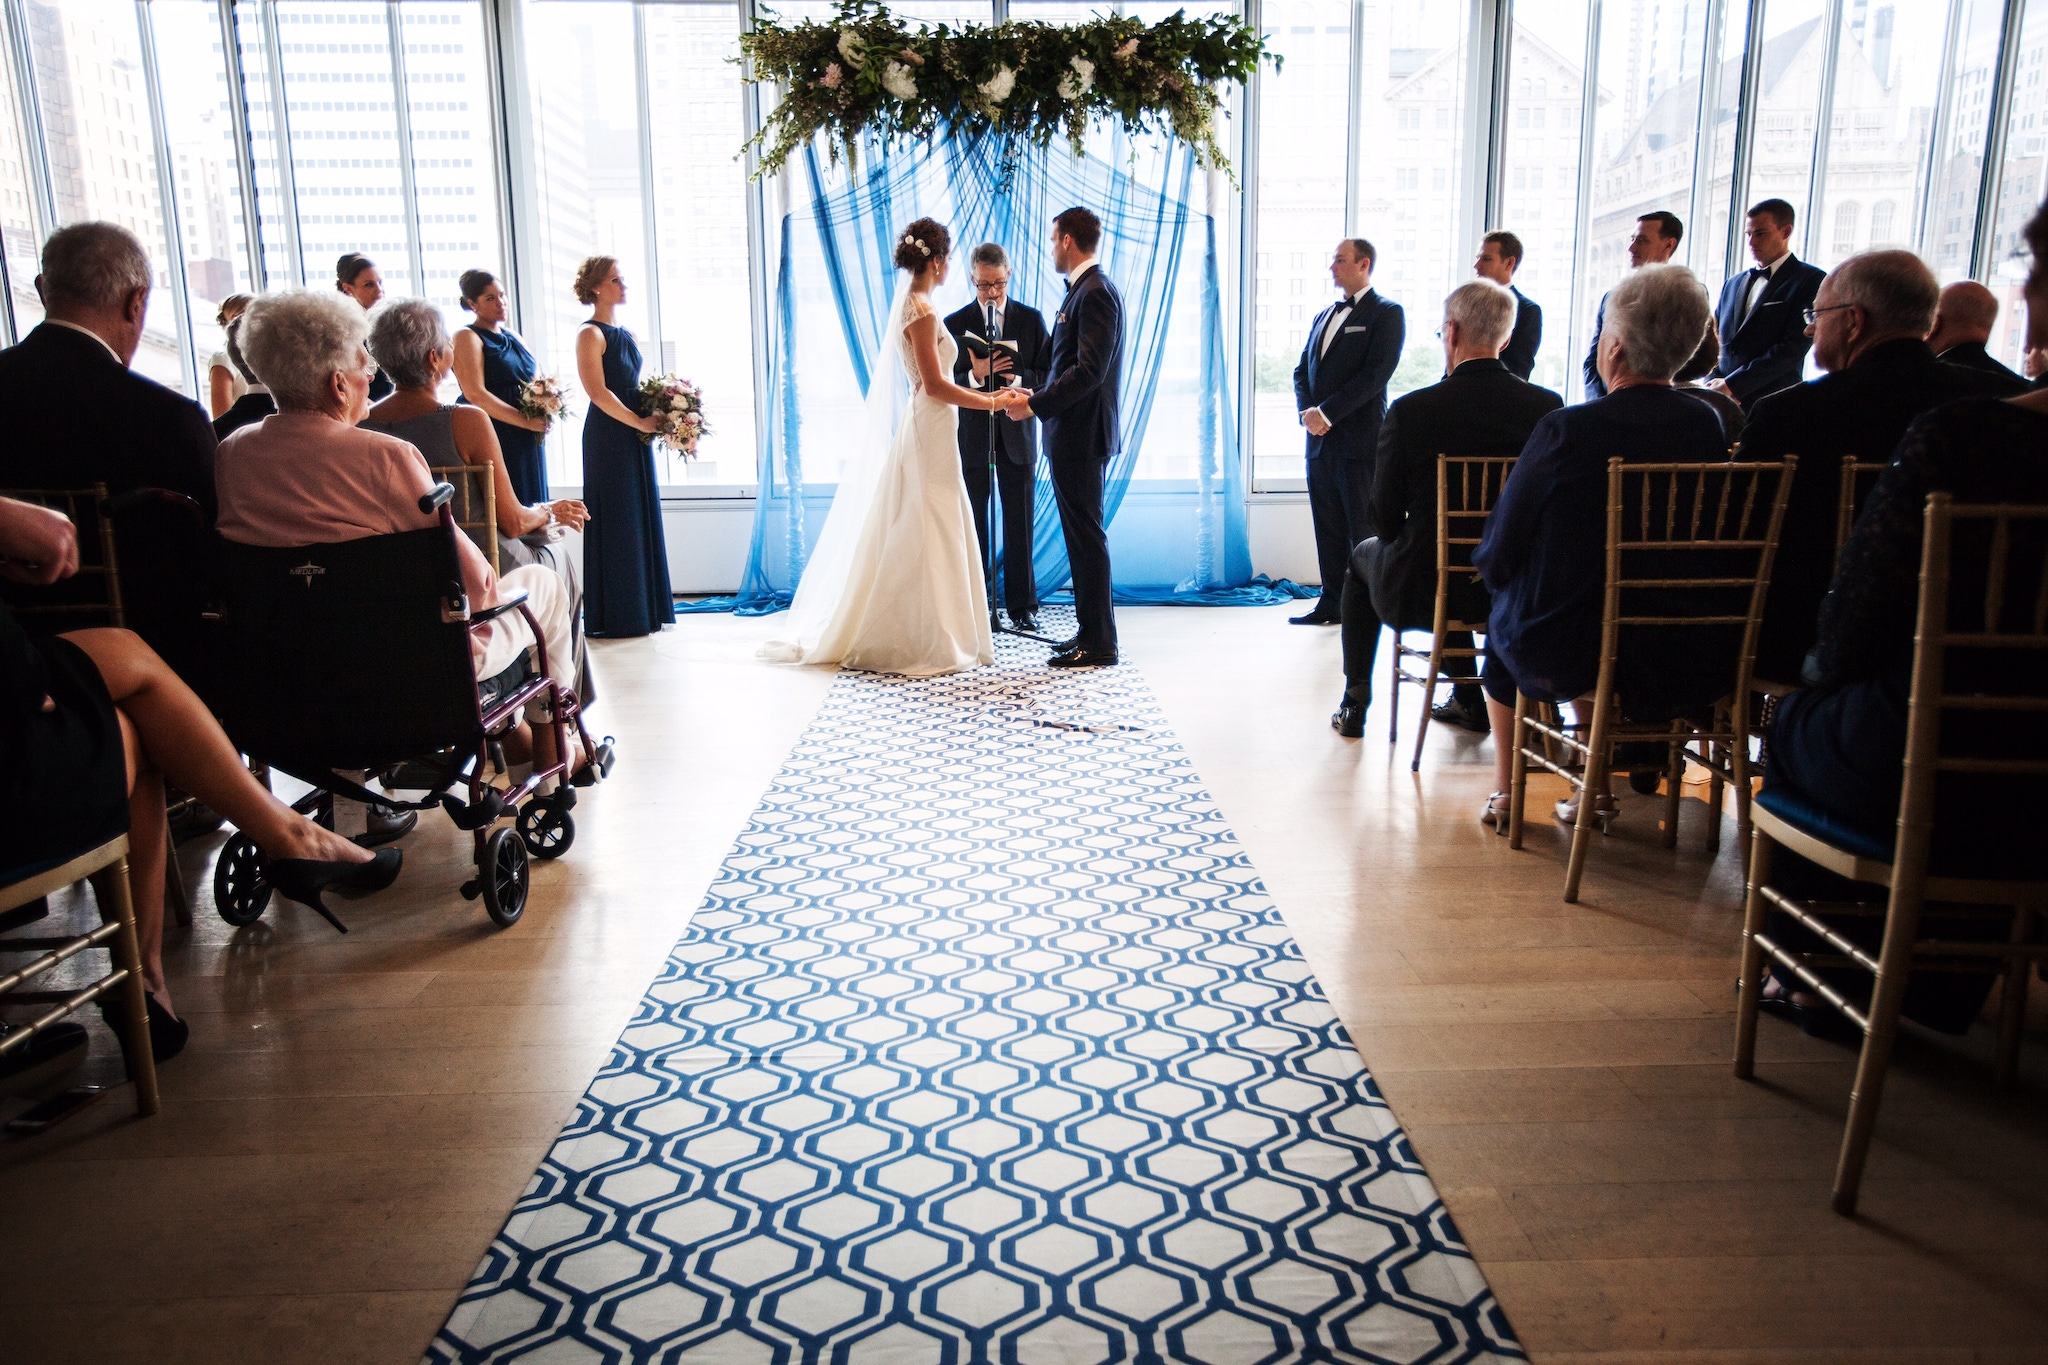 Wedding Aisle Ideas - Art Institute of Chicago